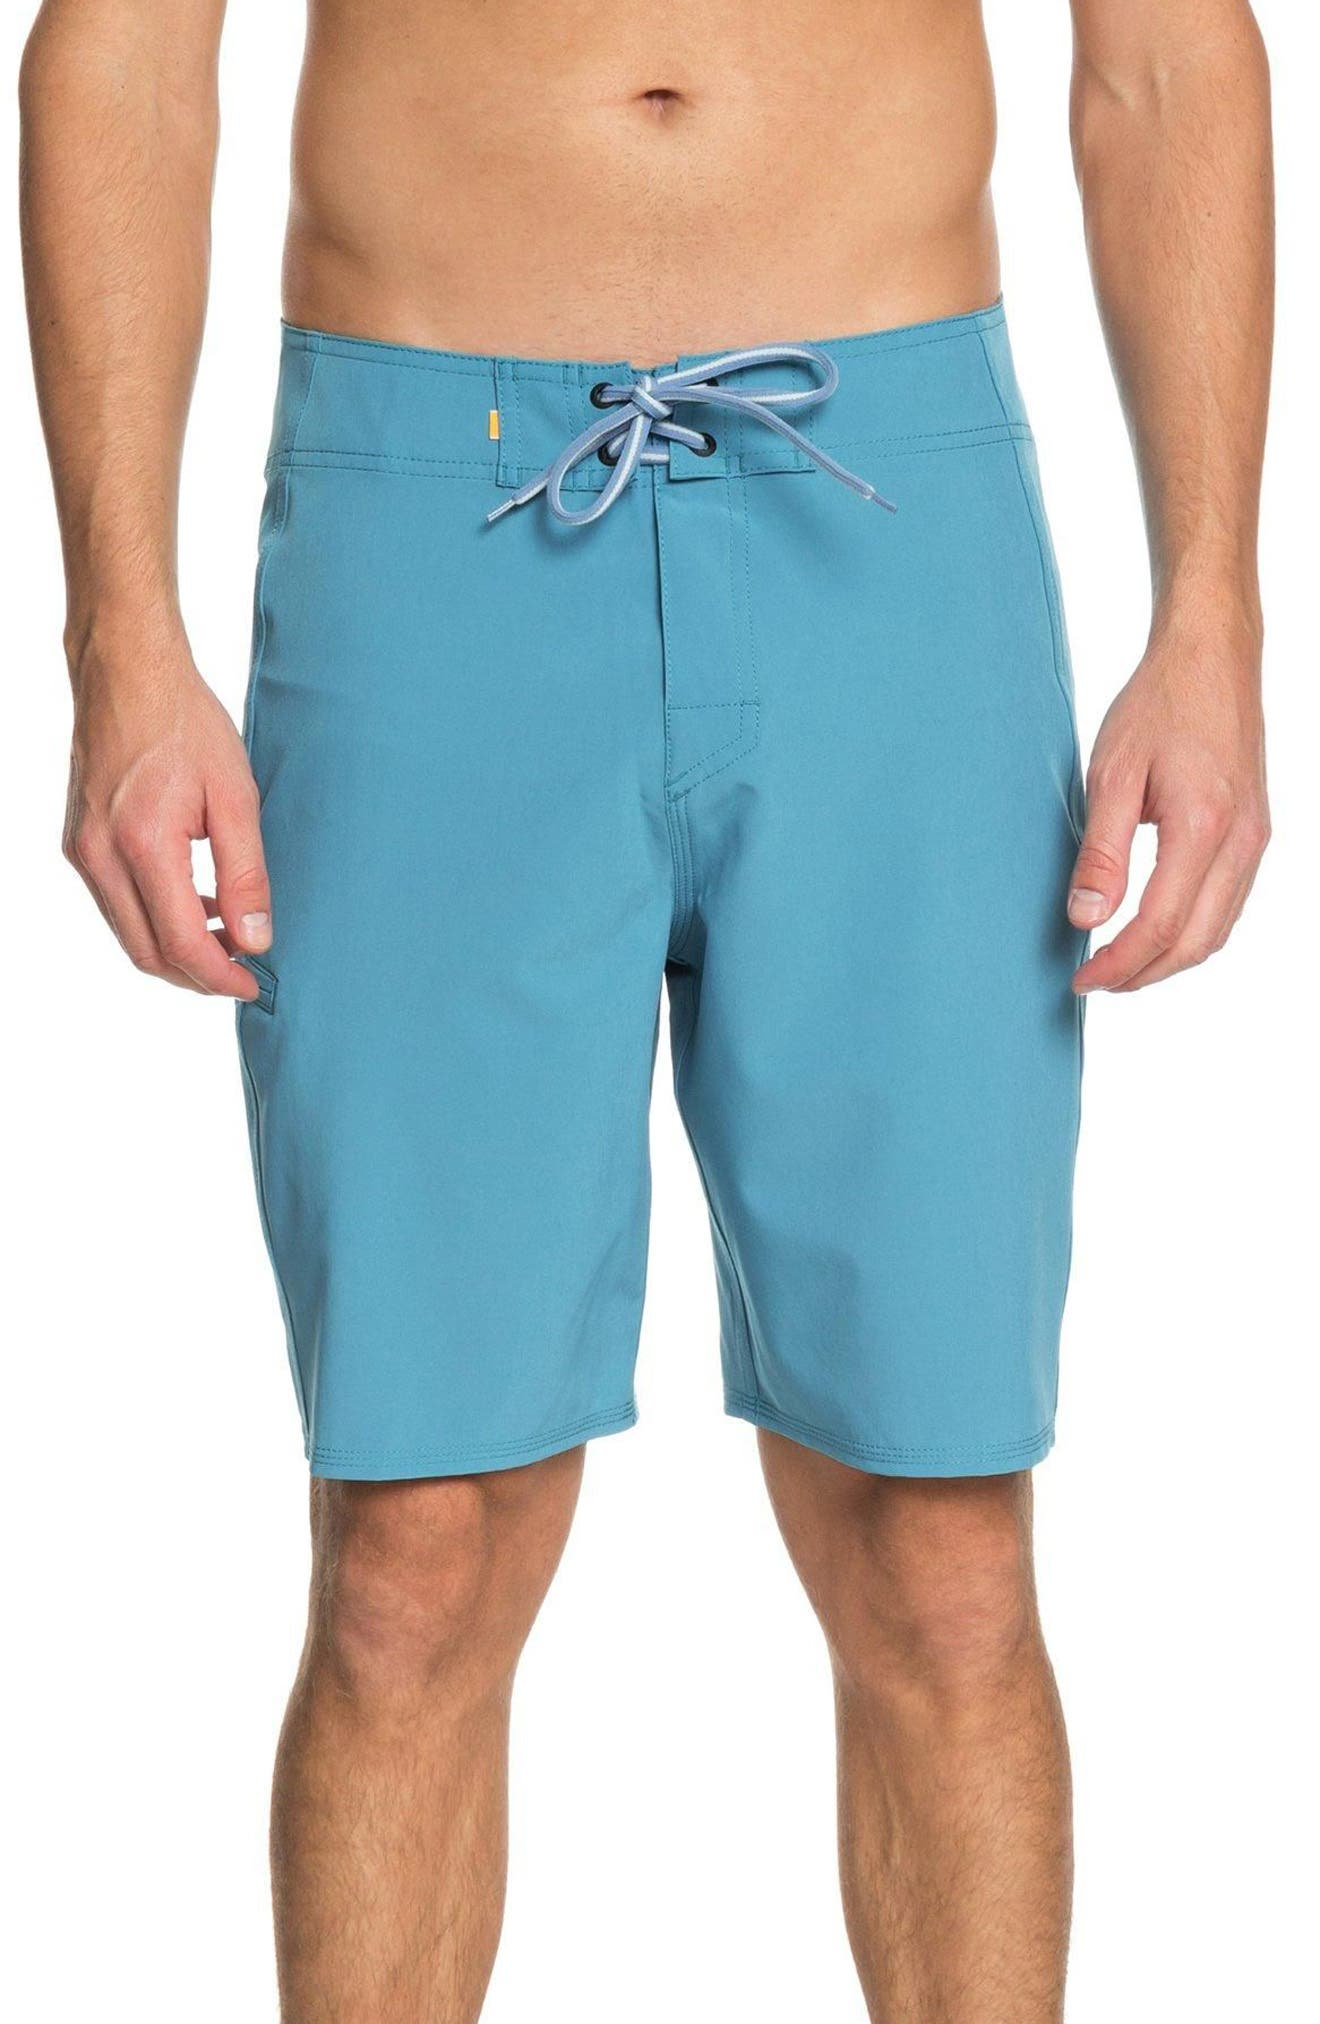 Makana Boardshorts,                             Main thumbnail 1, color,                             Blue Moon